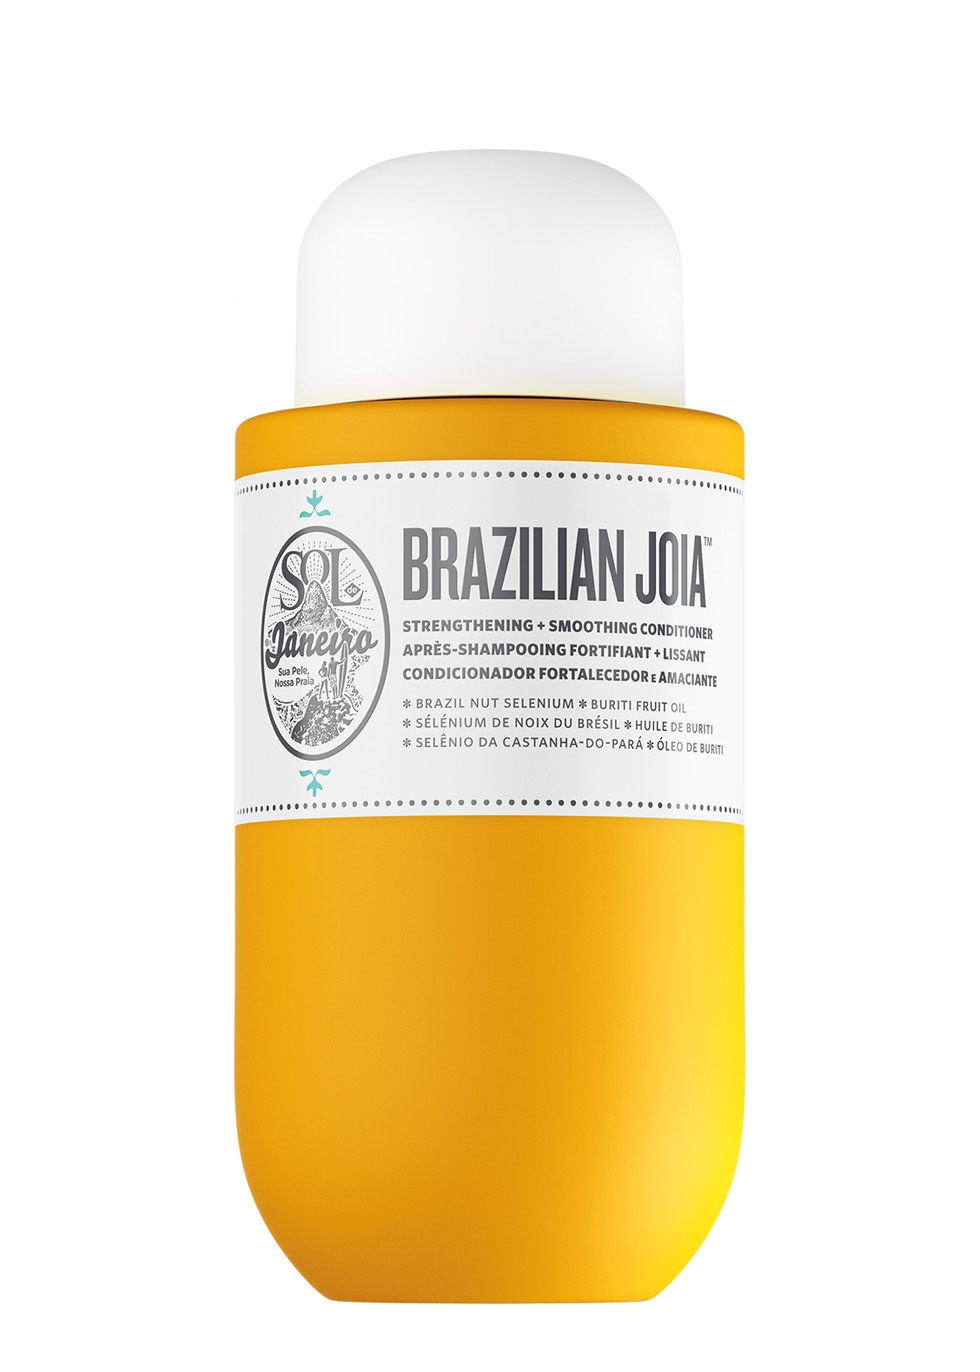 Brazilian Joia Strengthening & Smoothing Conditioner 295ml